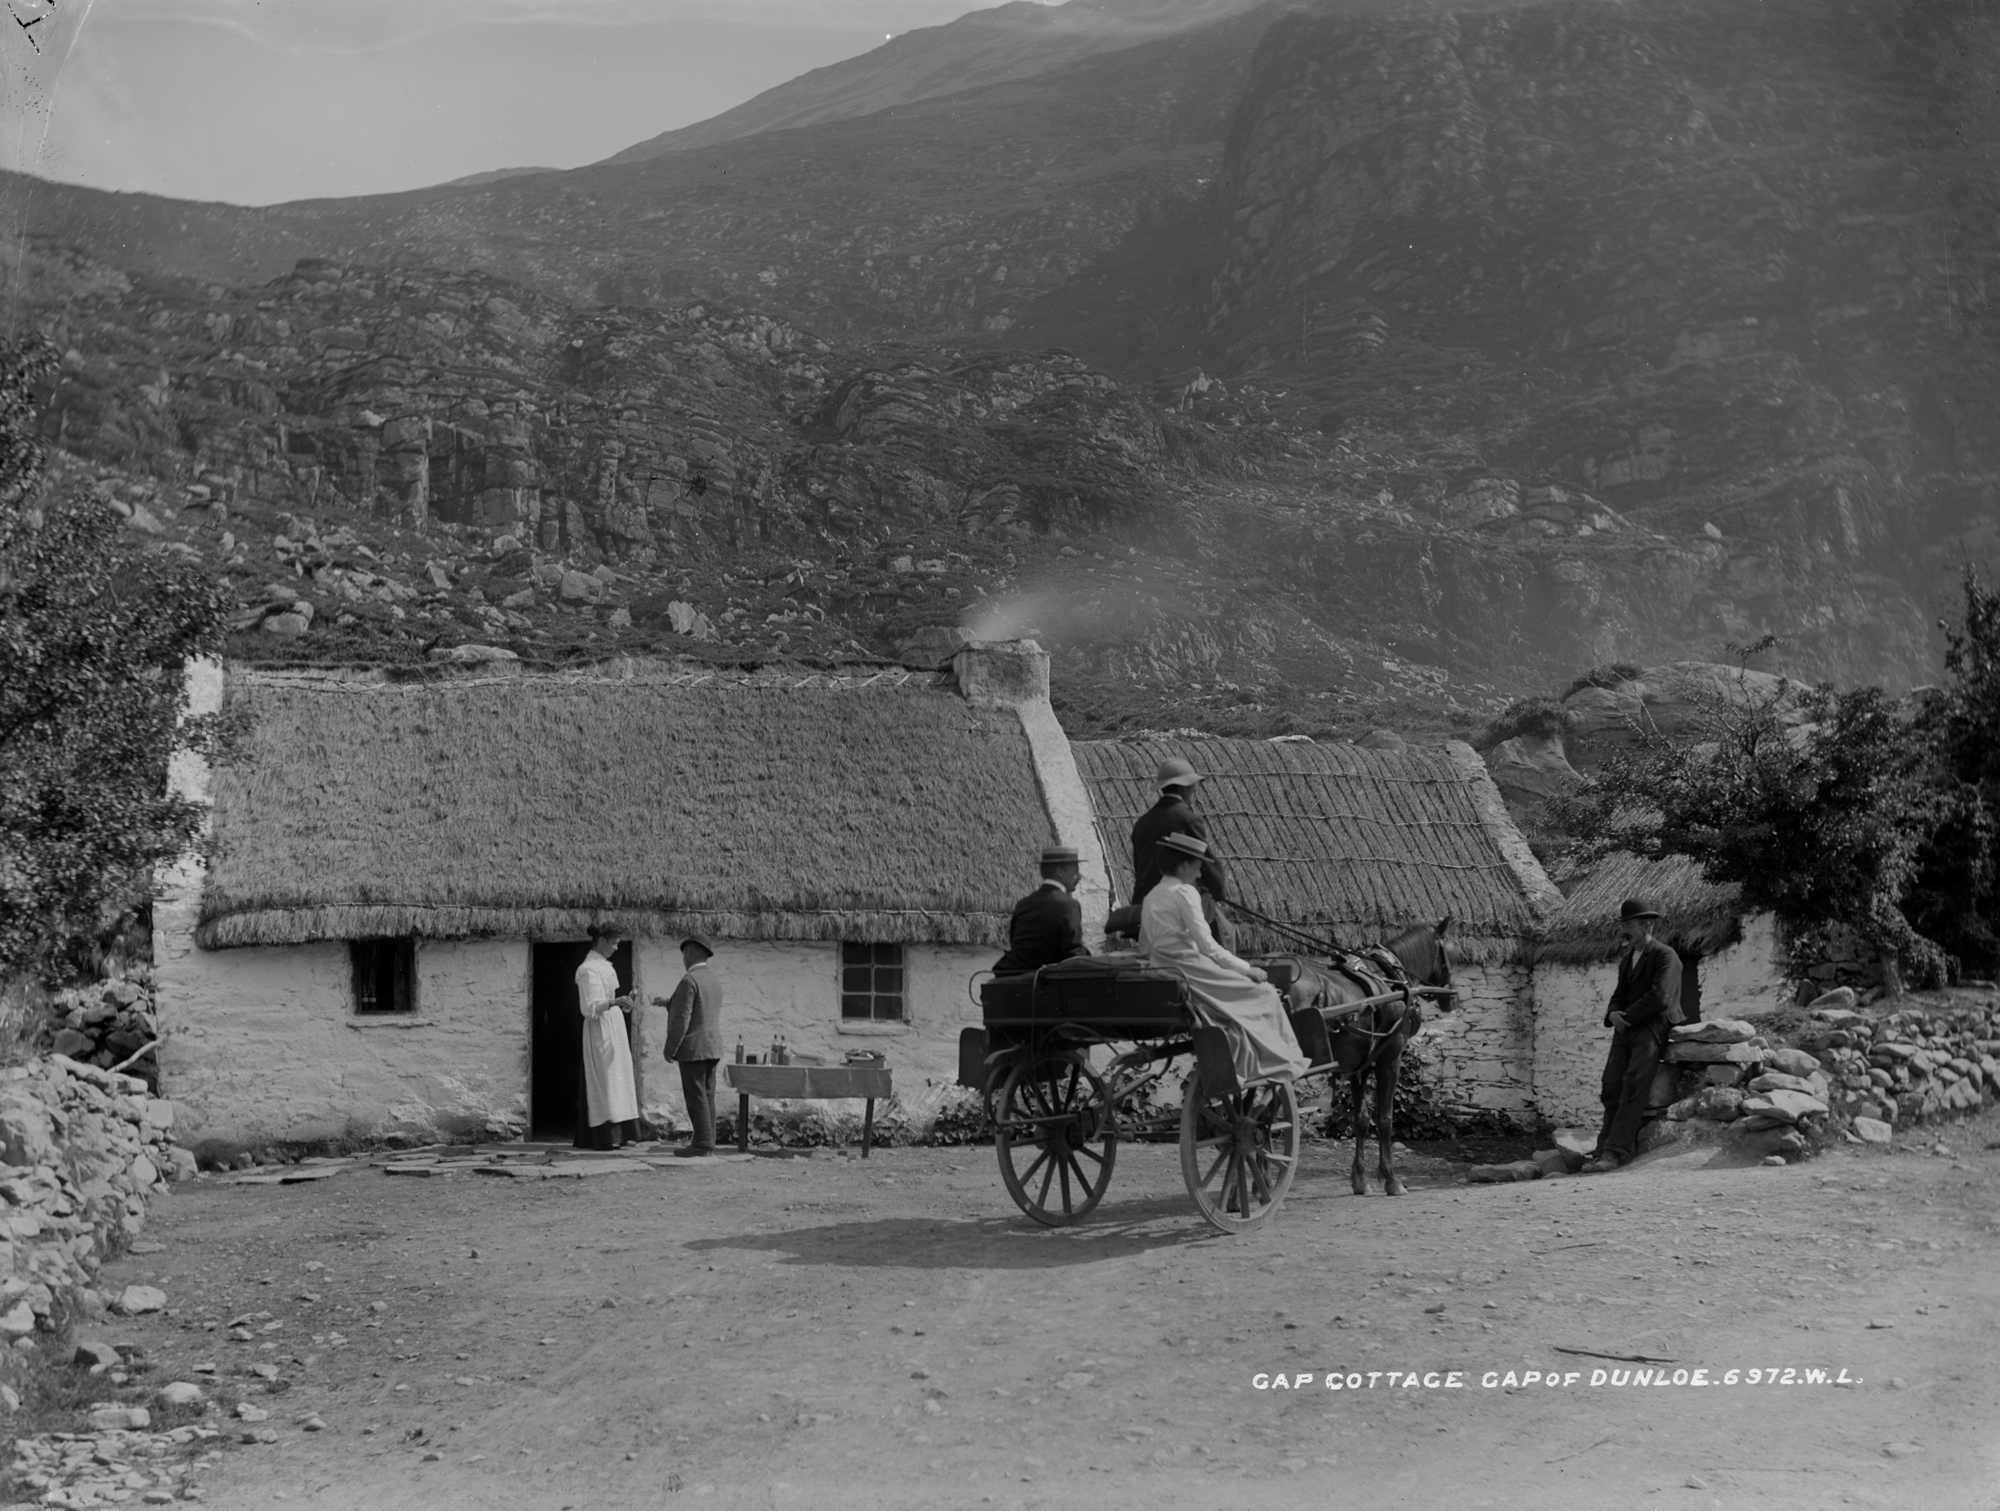 Gap of Dunloe, Mrs. Moriarty's, Killarney, Co. Kerry